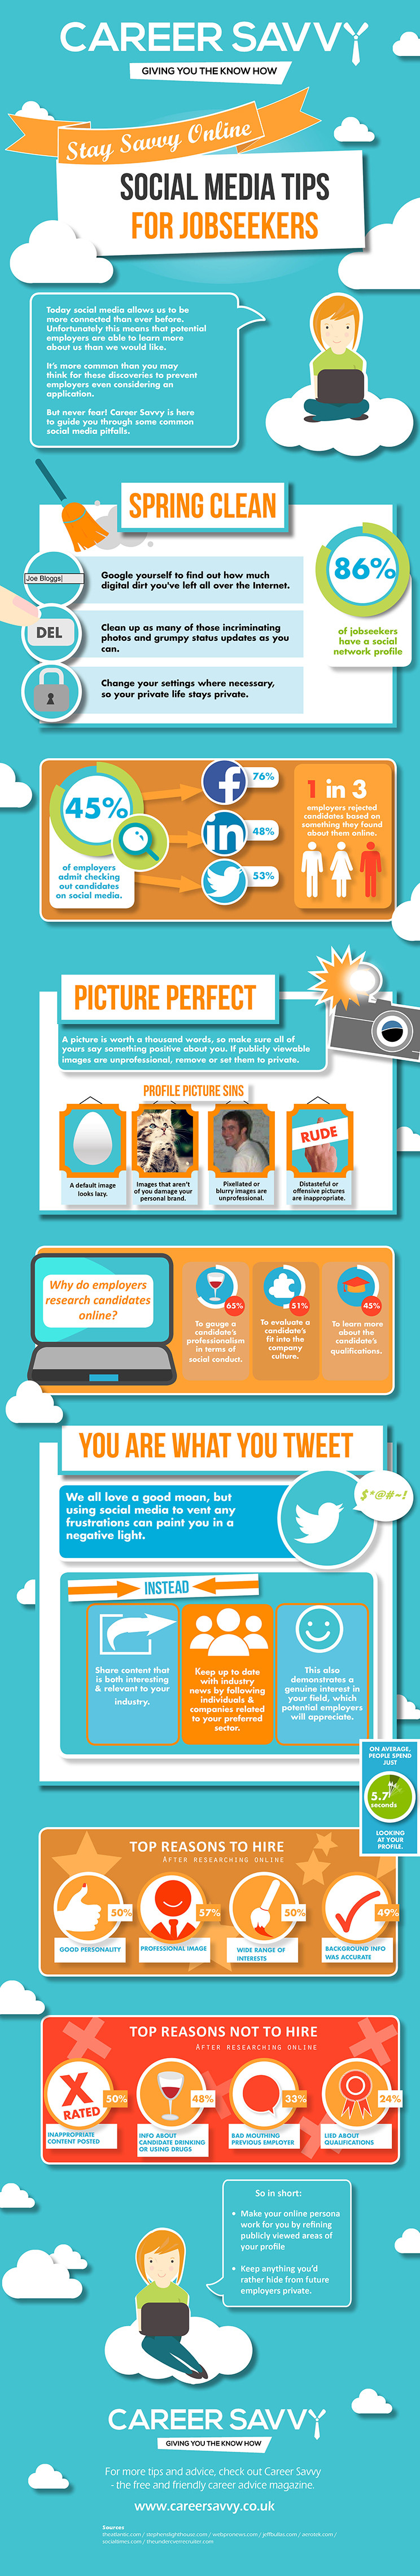 Career Savvy Infographic